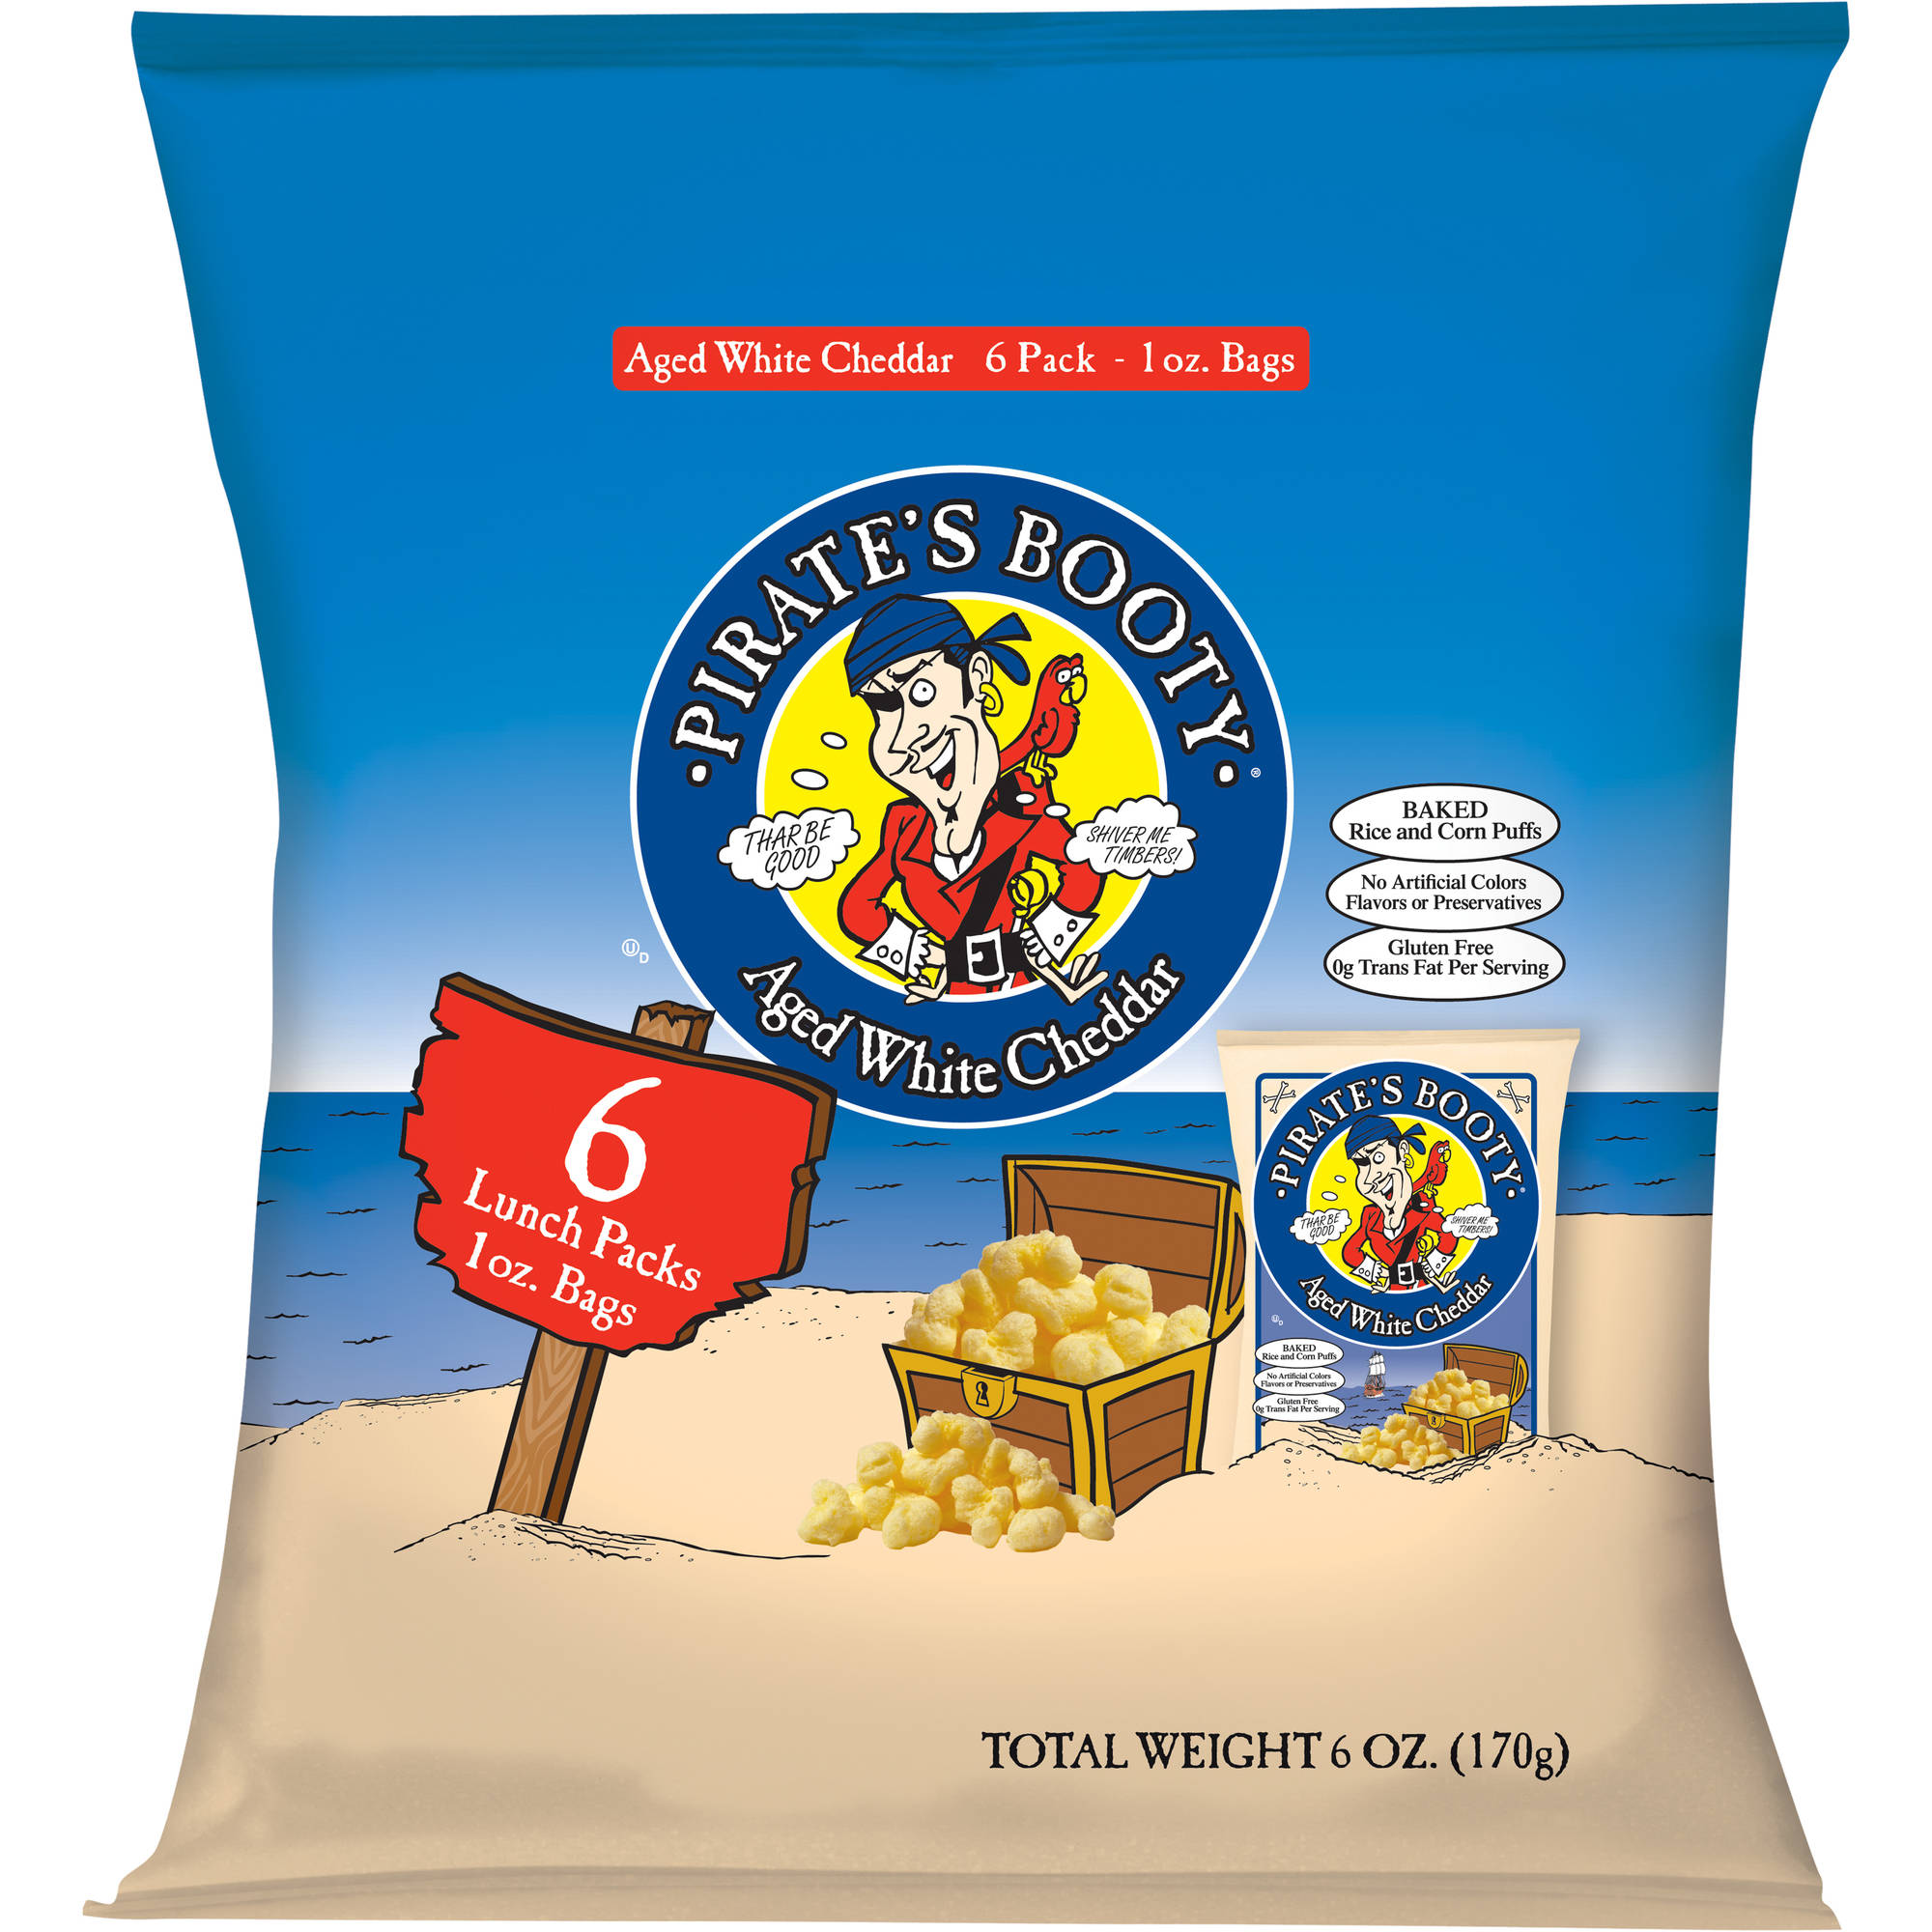 Pirate's Booty Aged White Cheddar Rice & Corn Puffs, 1 oz, 6 count